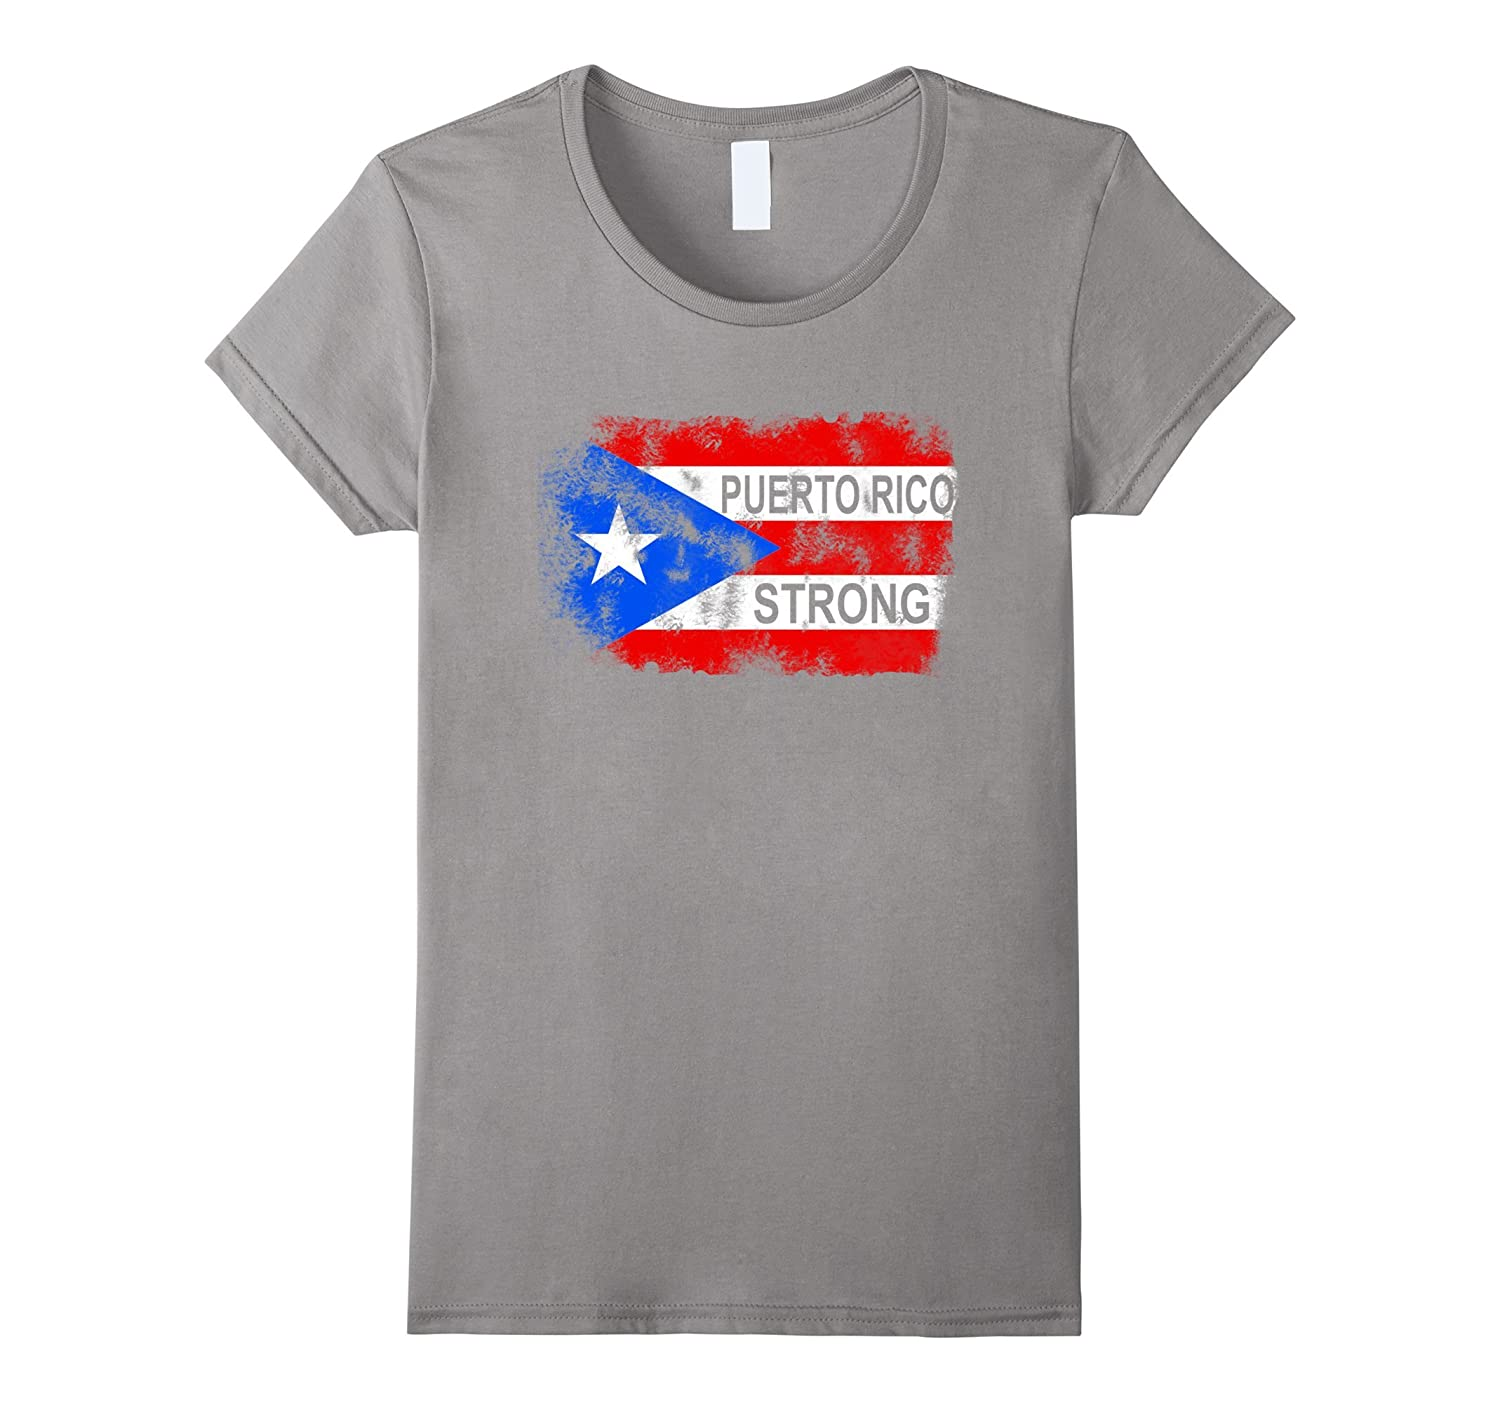 amazon com strong t shirt fuerte support for puerto rico unisex